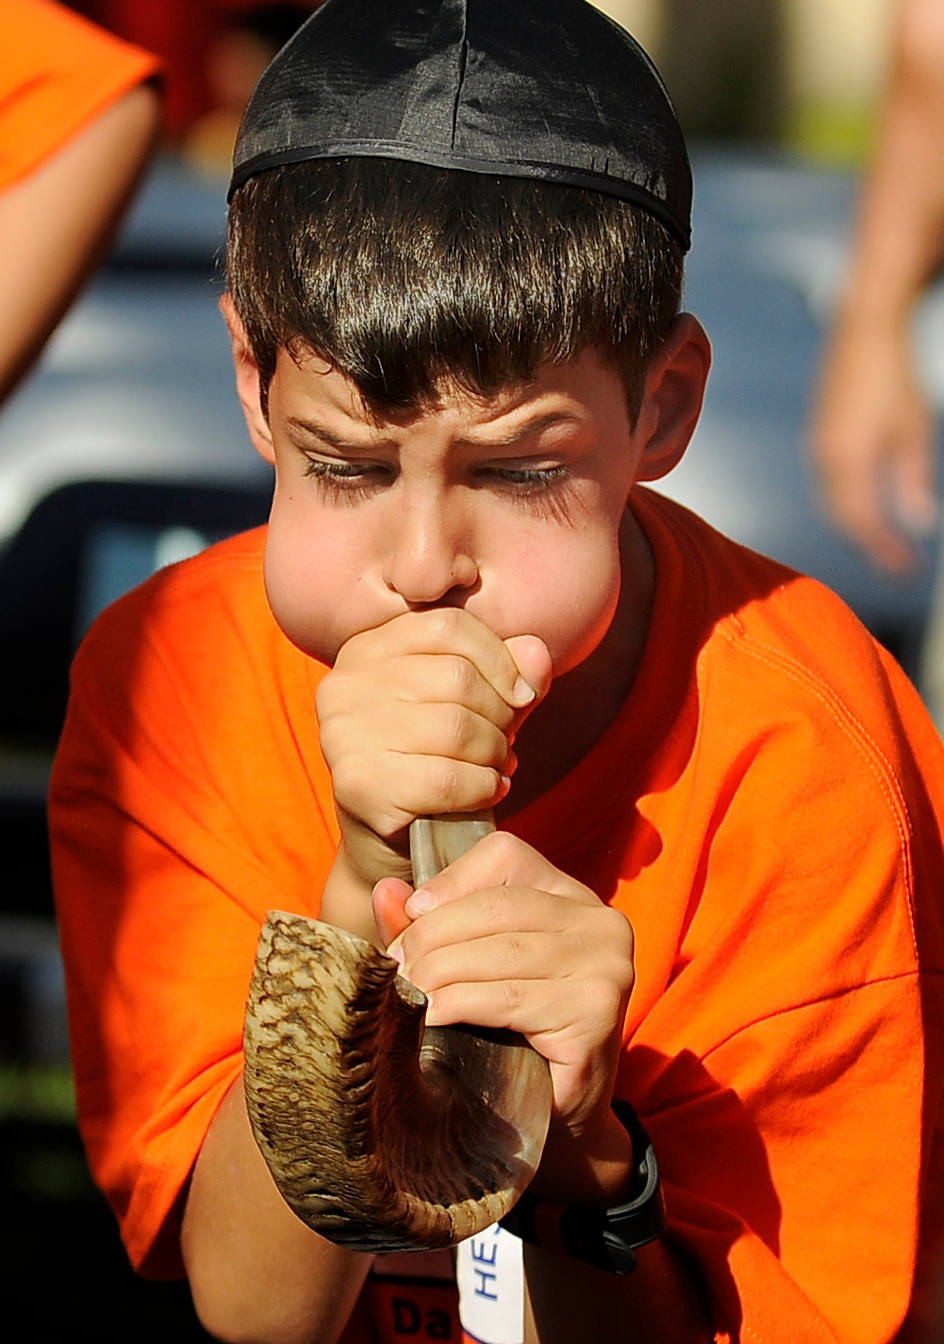 . Ariel Levin,8, blows on the shofar, made from a rams horn, with all his might. Children at the Abraham Joshua Heschel Day School gathered to blow their shofars and sing Jewish songs for the Rosh Hashanah holiday. Northridge, CA. 8/30/2013(John McCoy/LA Daily News)